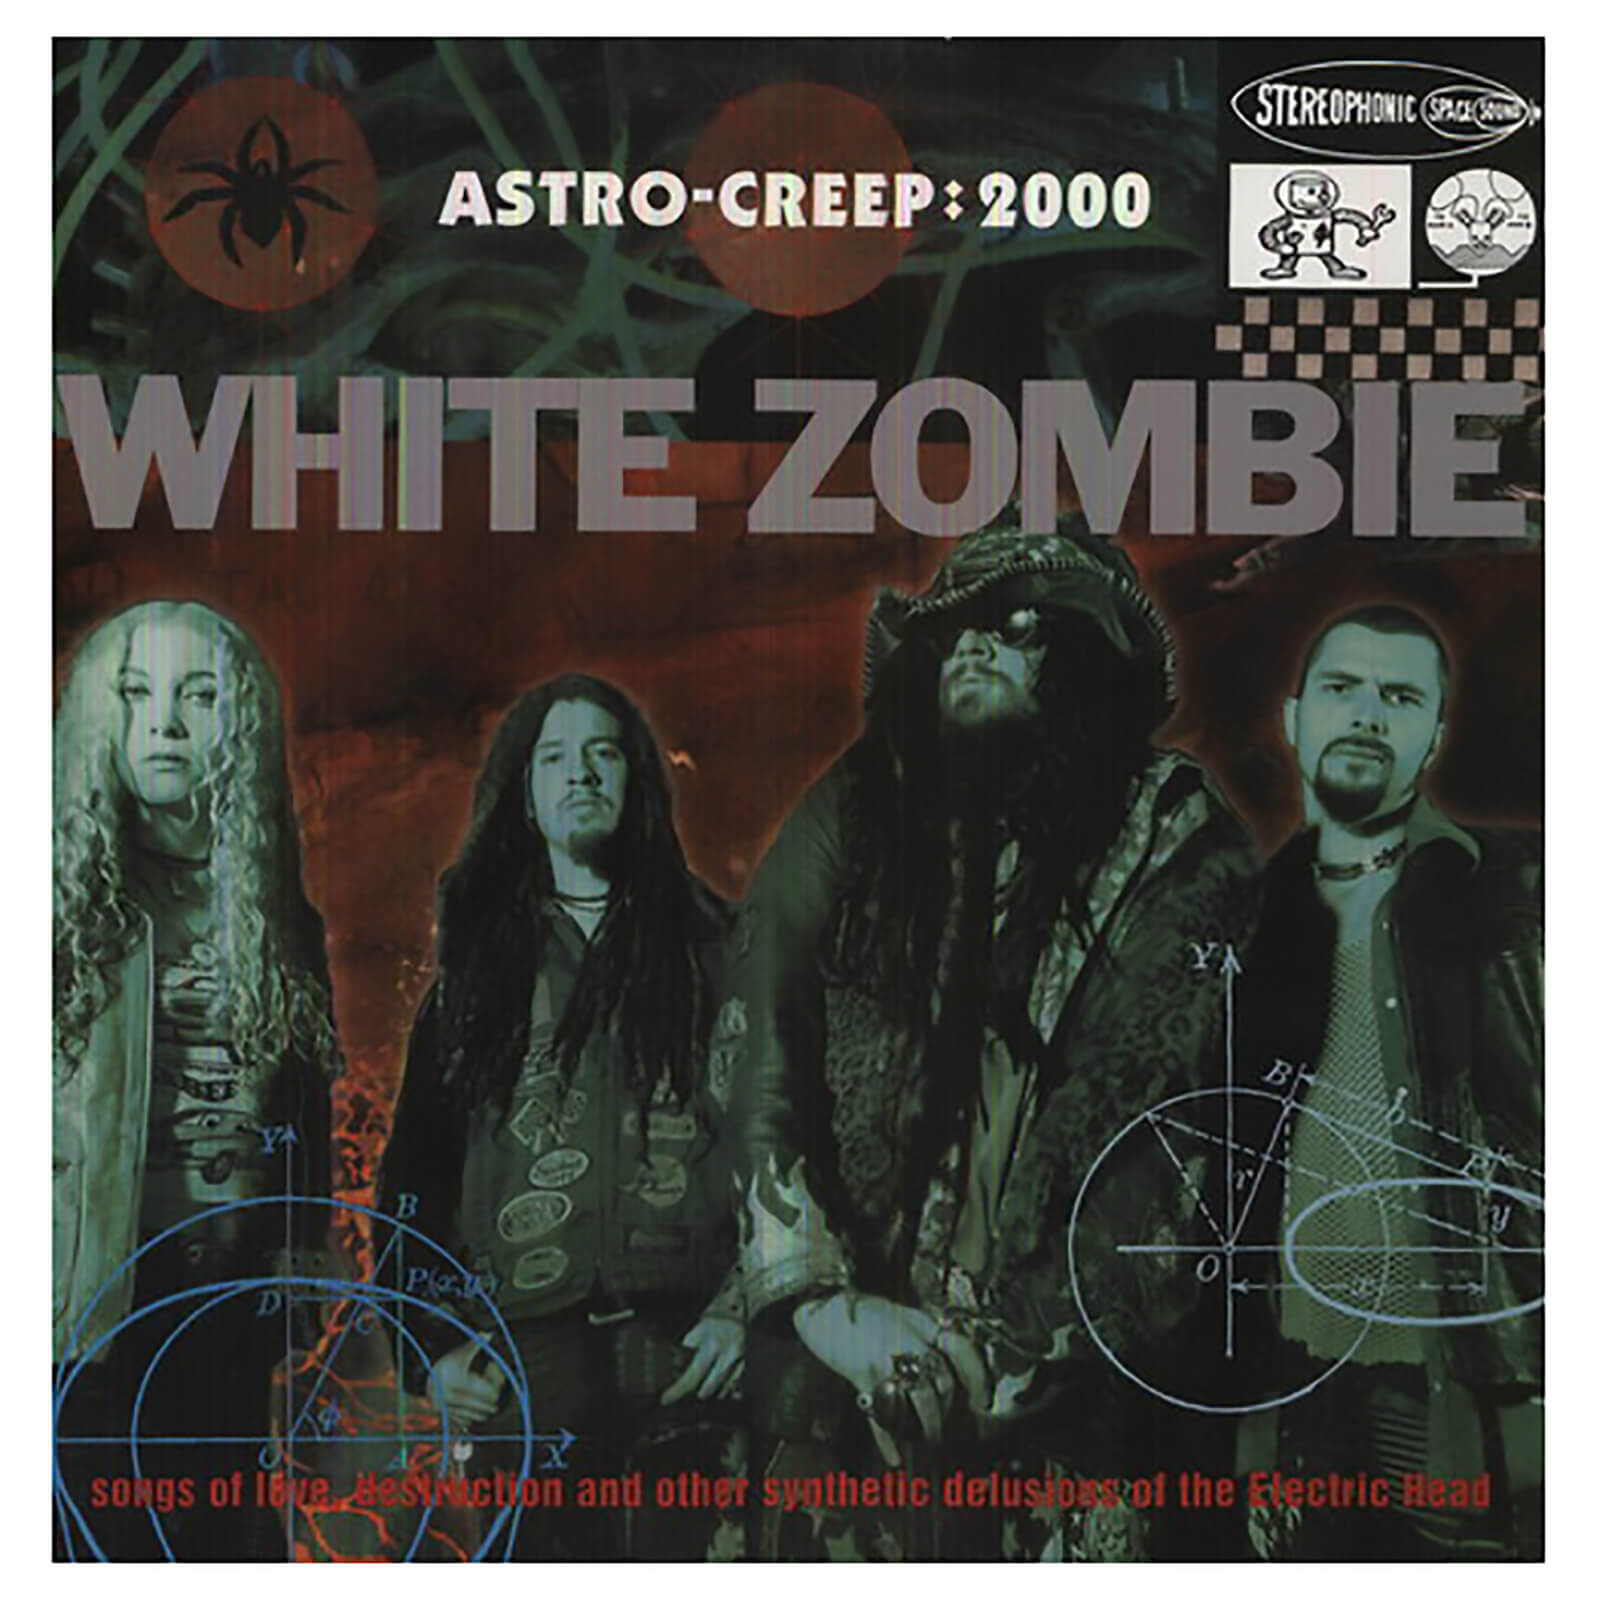 White Zombie - Astro-Creep: 2000 - Vinyl